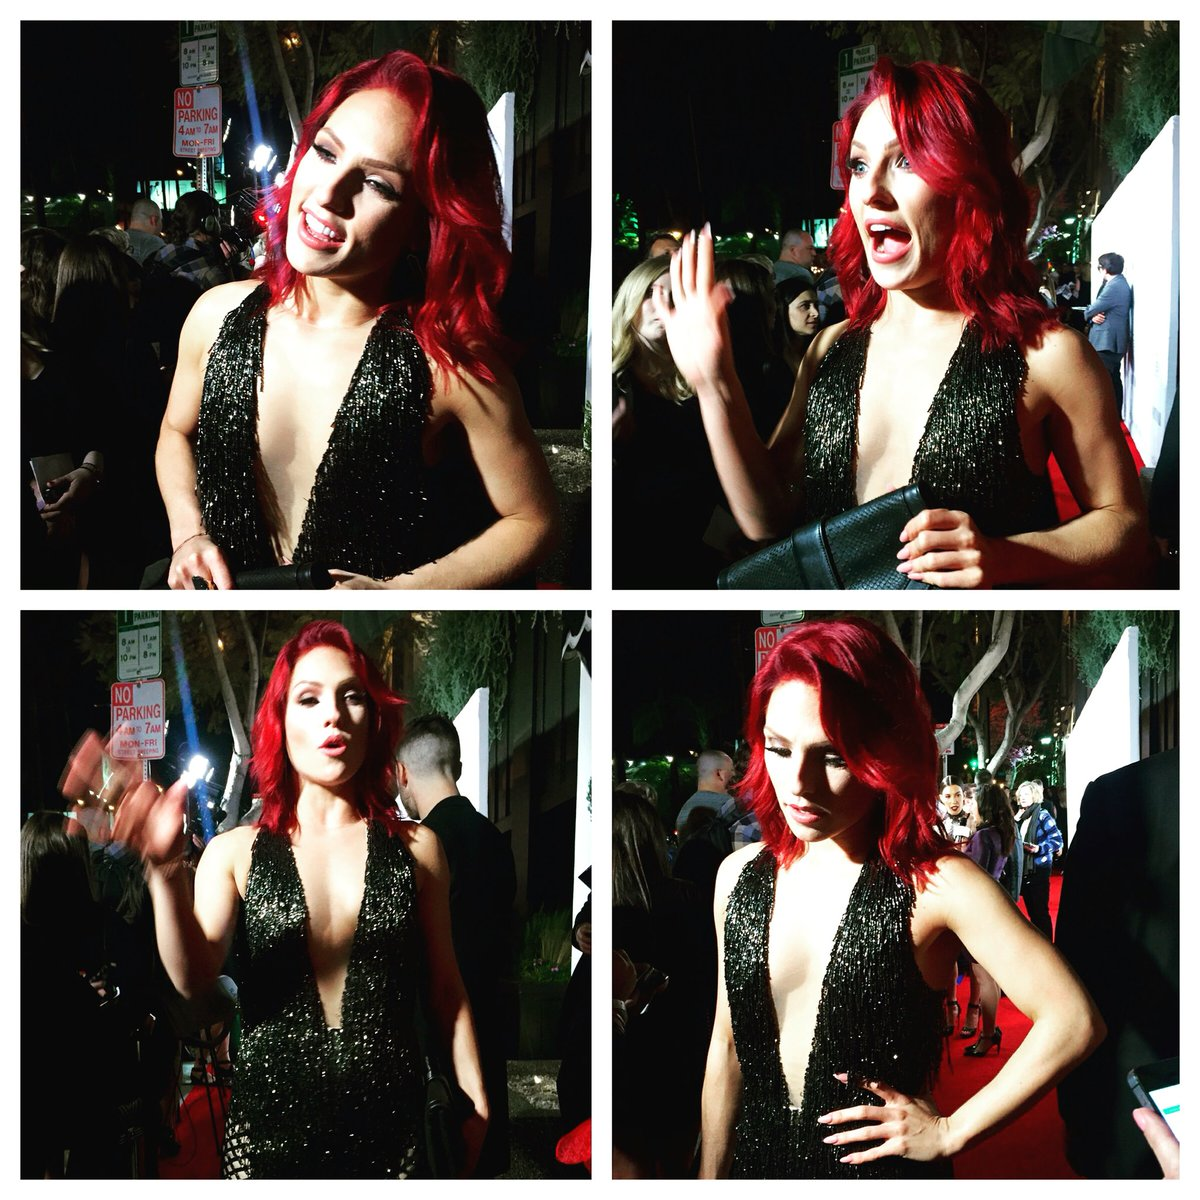 About last night! Loved @SharnaBurgess @VanityFair event @VFsocialclub @LOrealParisUSA #VFSC #lorealista #DWTS https://t.co/xDihSMj6a2